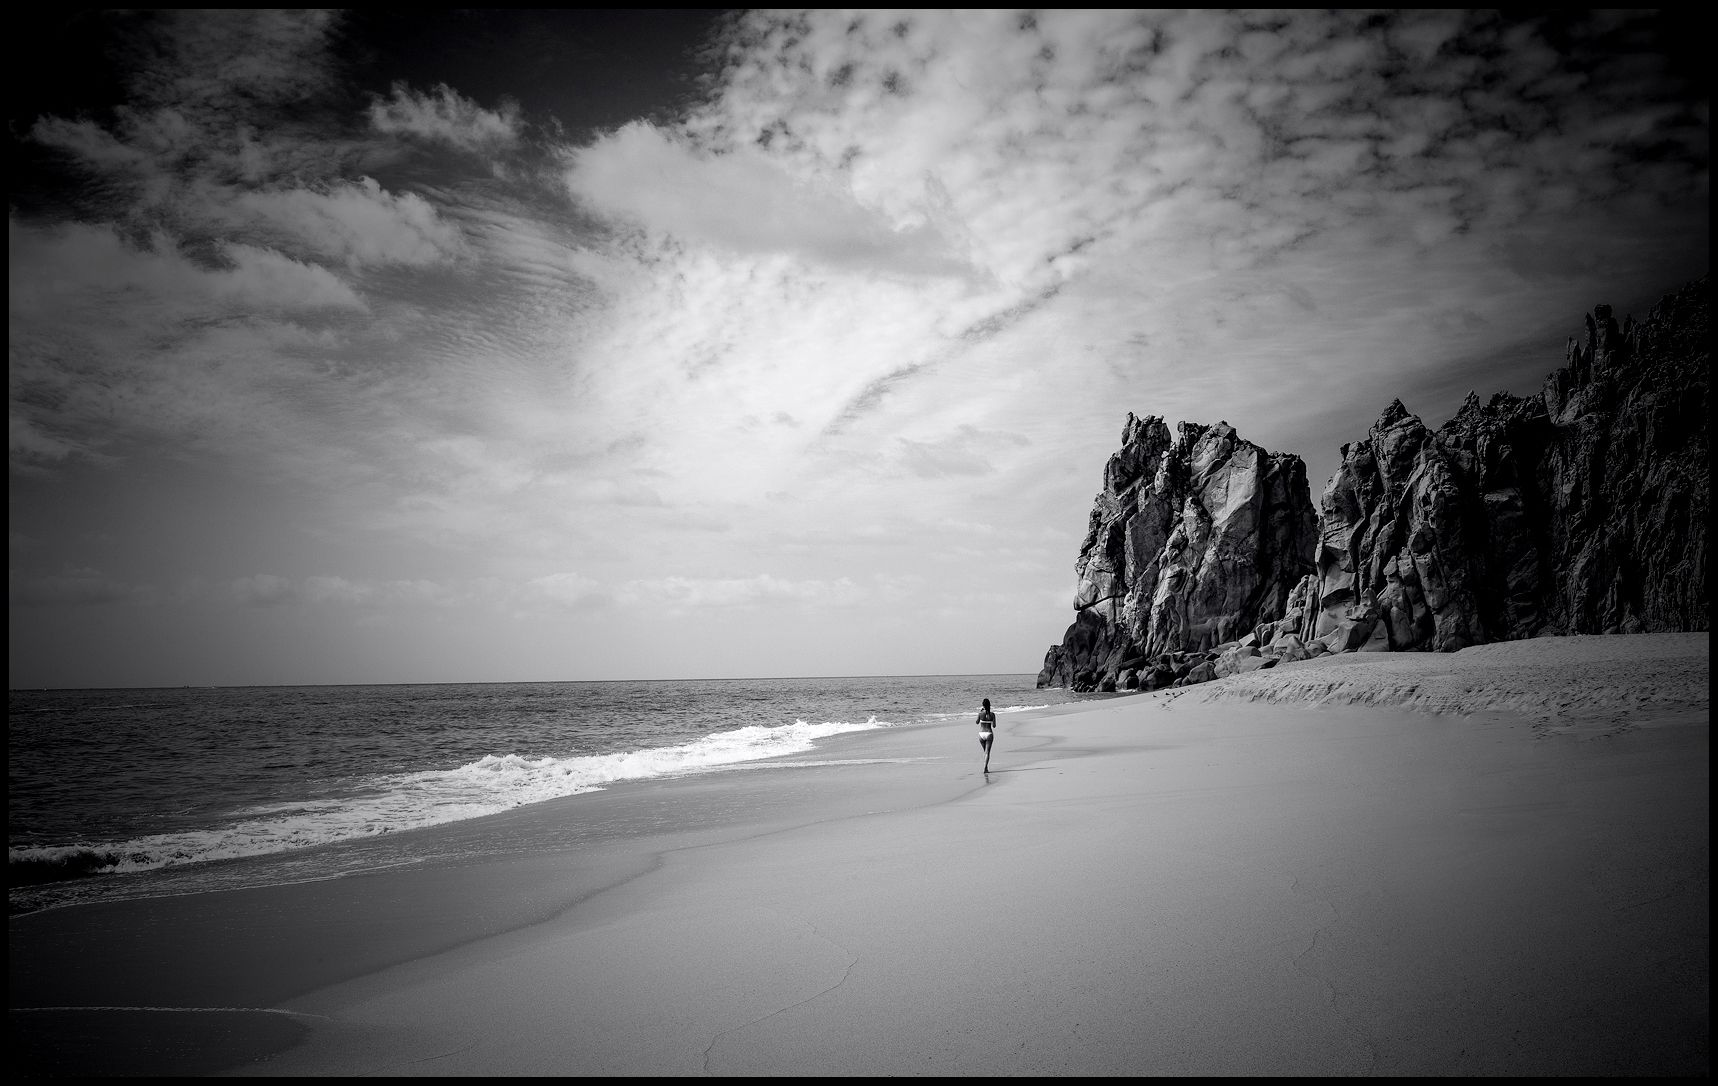 Divorce Beach - Cabo San Lucas, Mexico, 01.29.2017